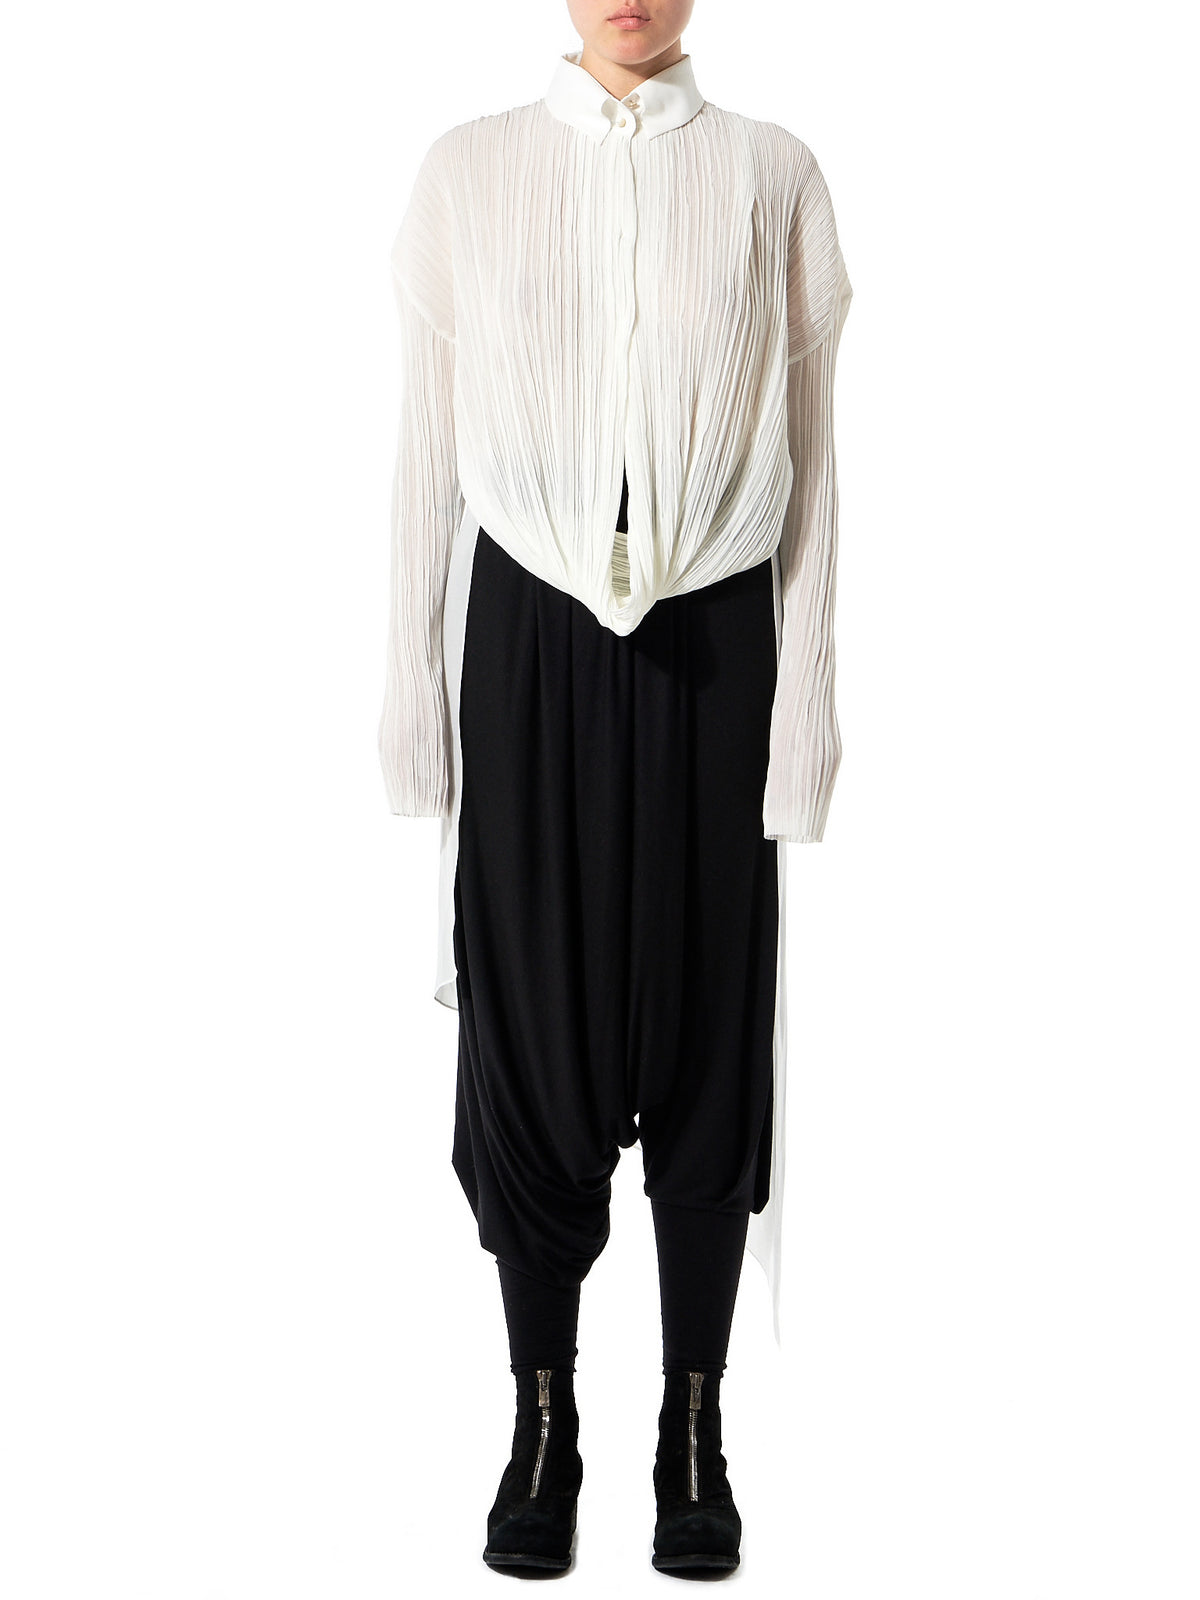 Sheer Pleated Blouse (GLS-DR69-IVORY) - H. Lorenzo